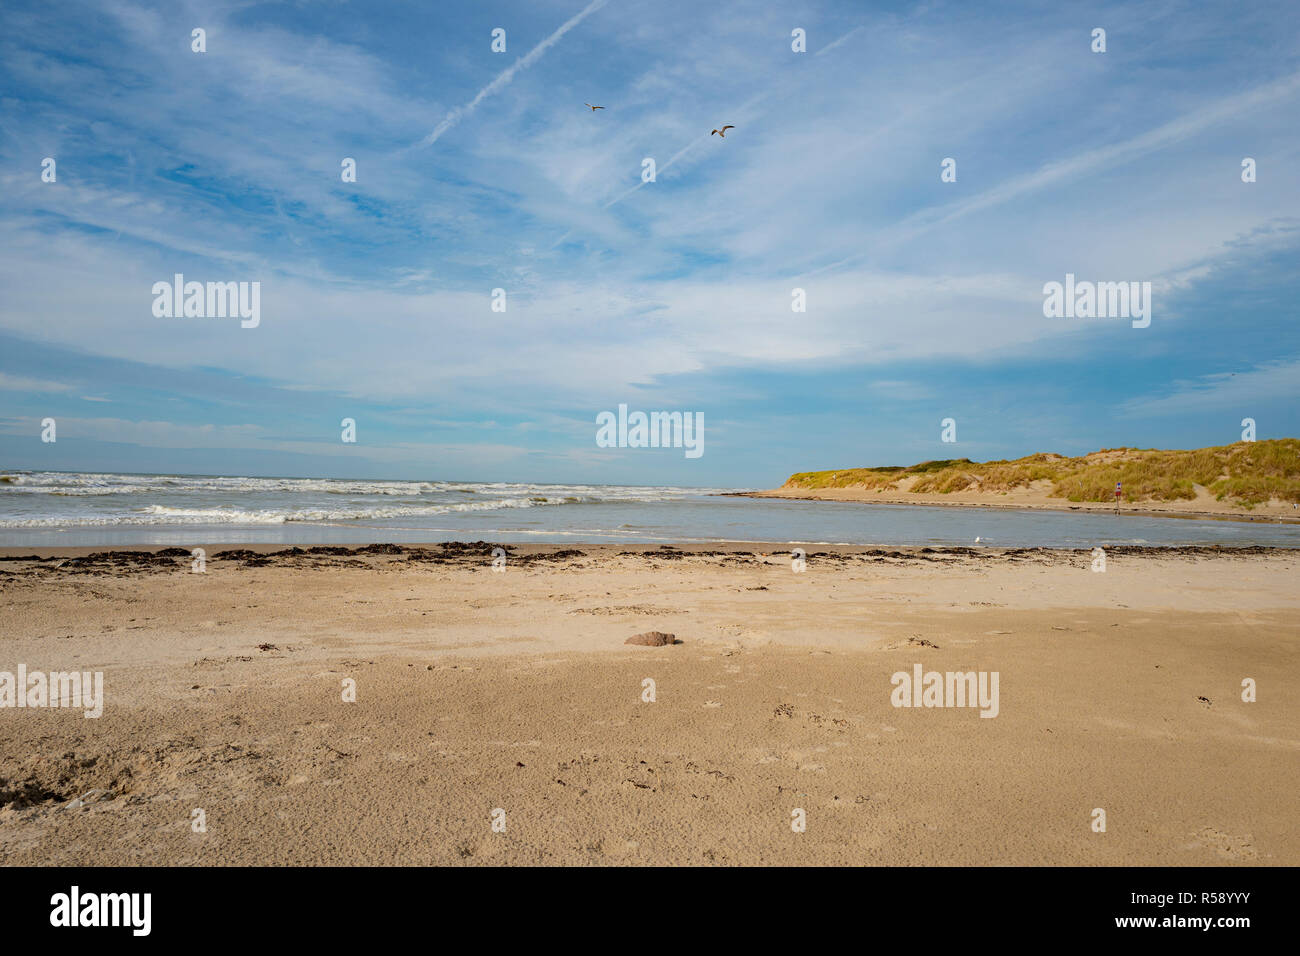 Beach in Hardelot in Northen France - Stock Image